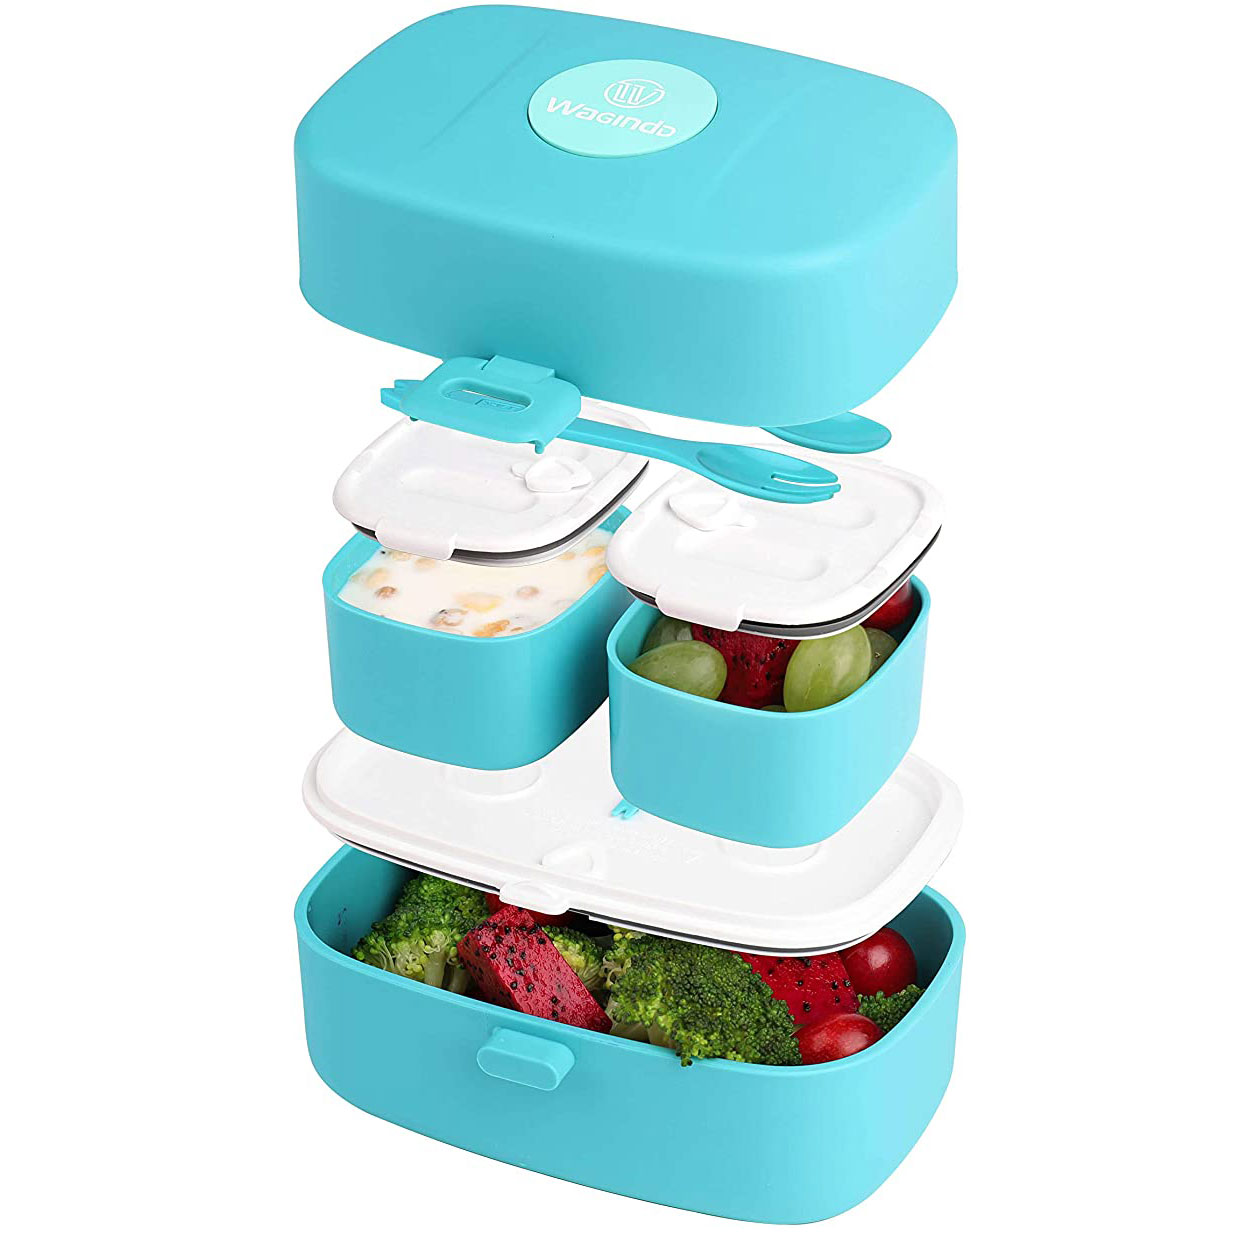 Wagindd Stacking Bento Box Lunch Box 3 Compartments